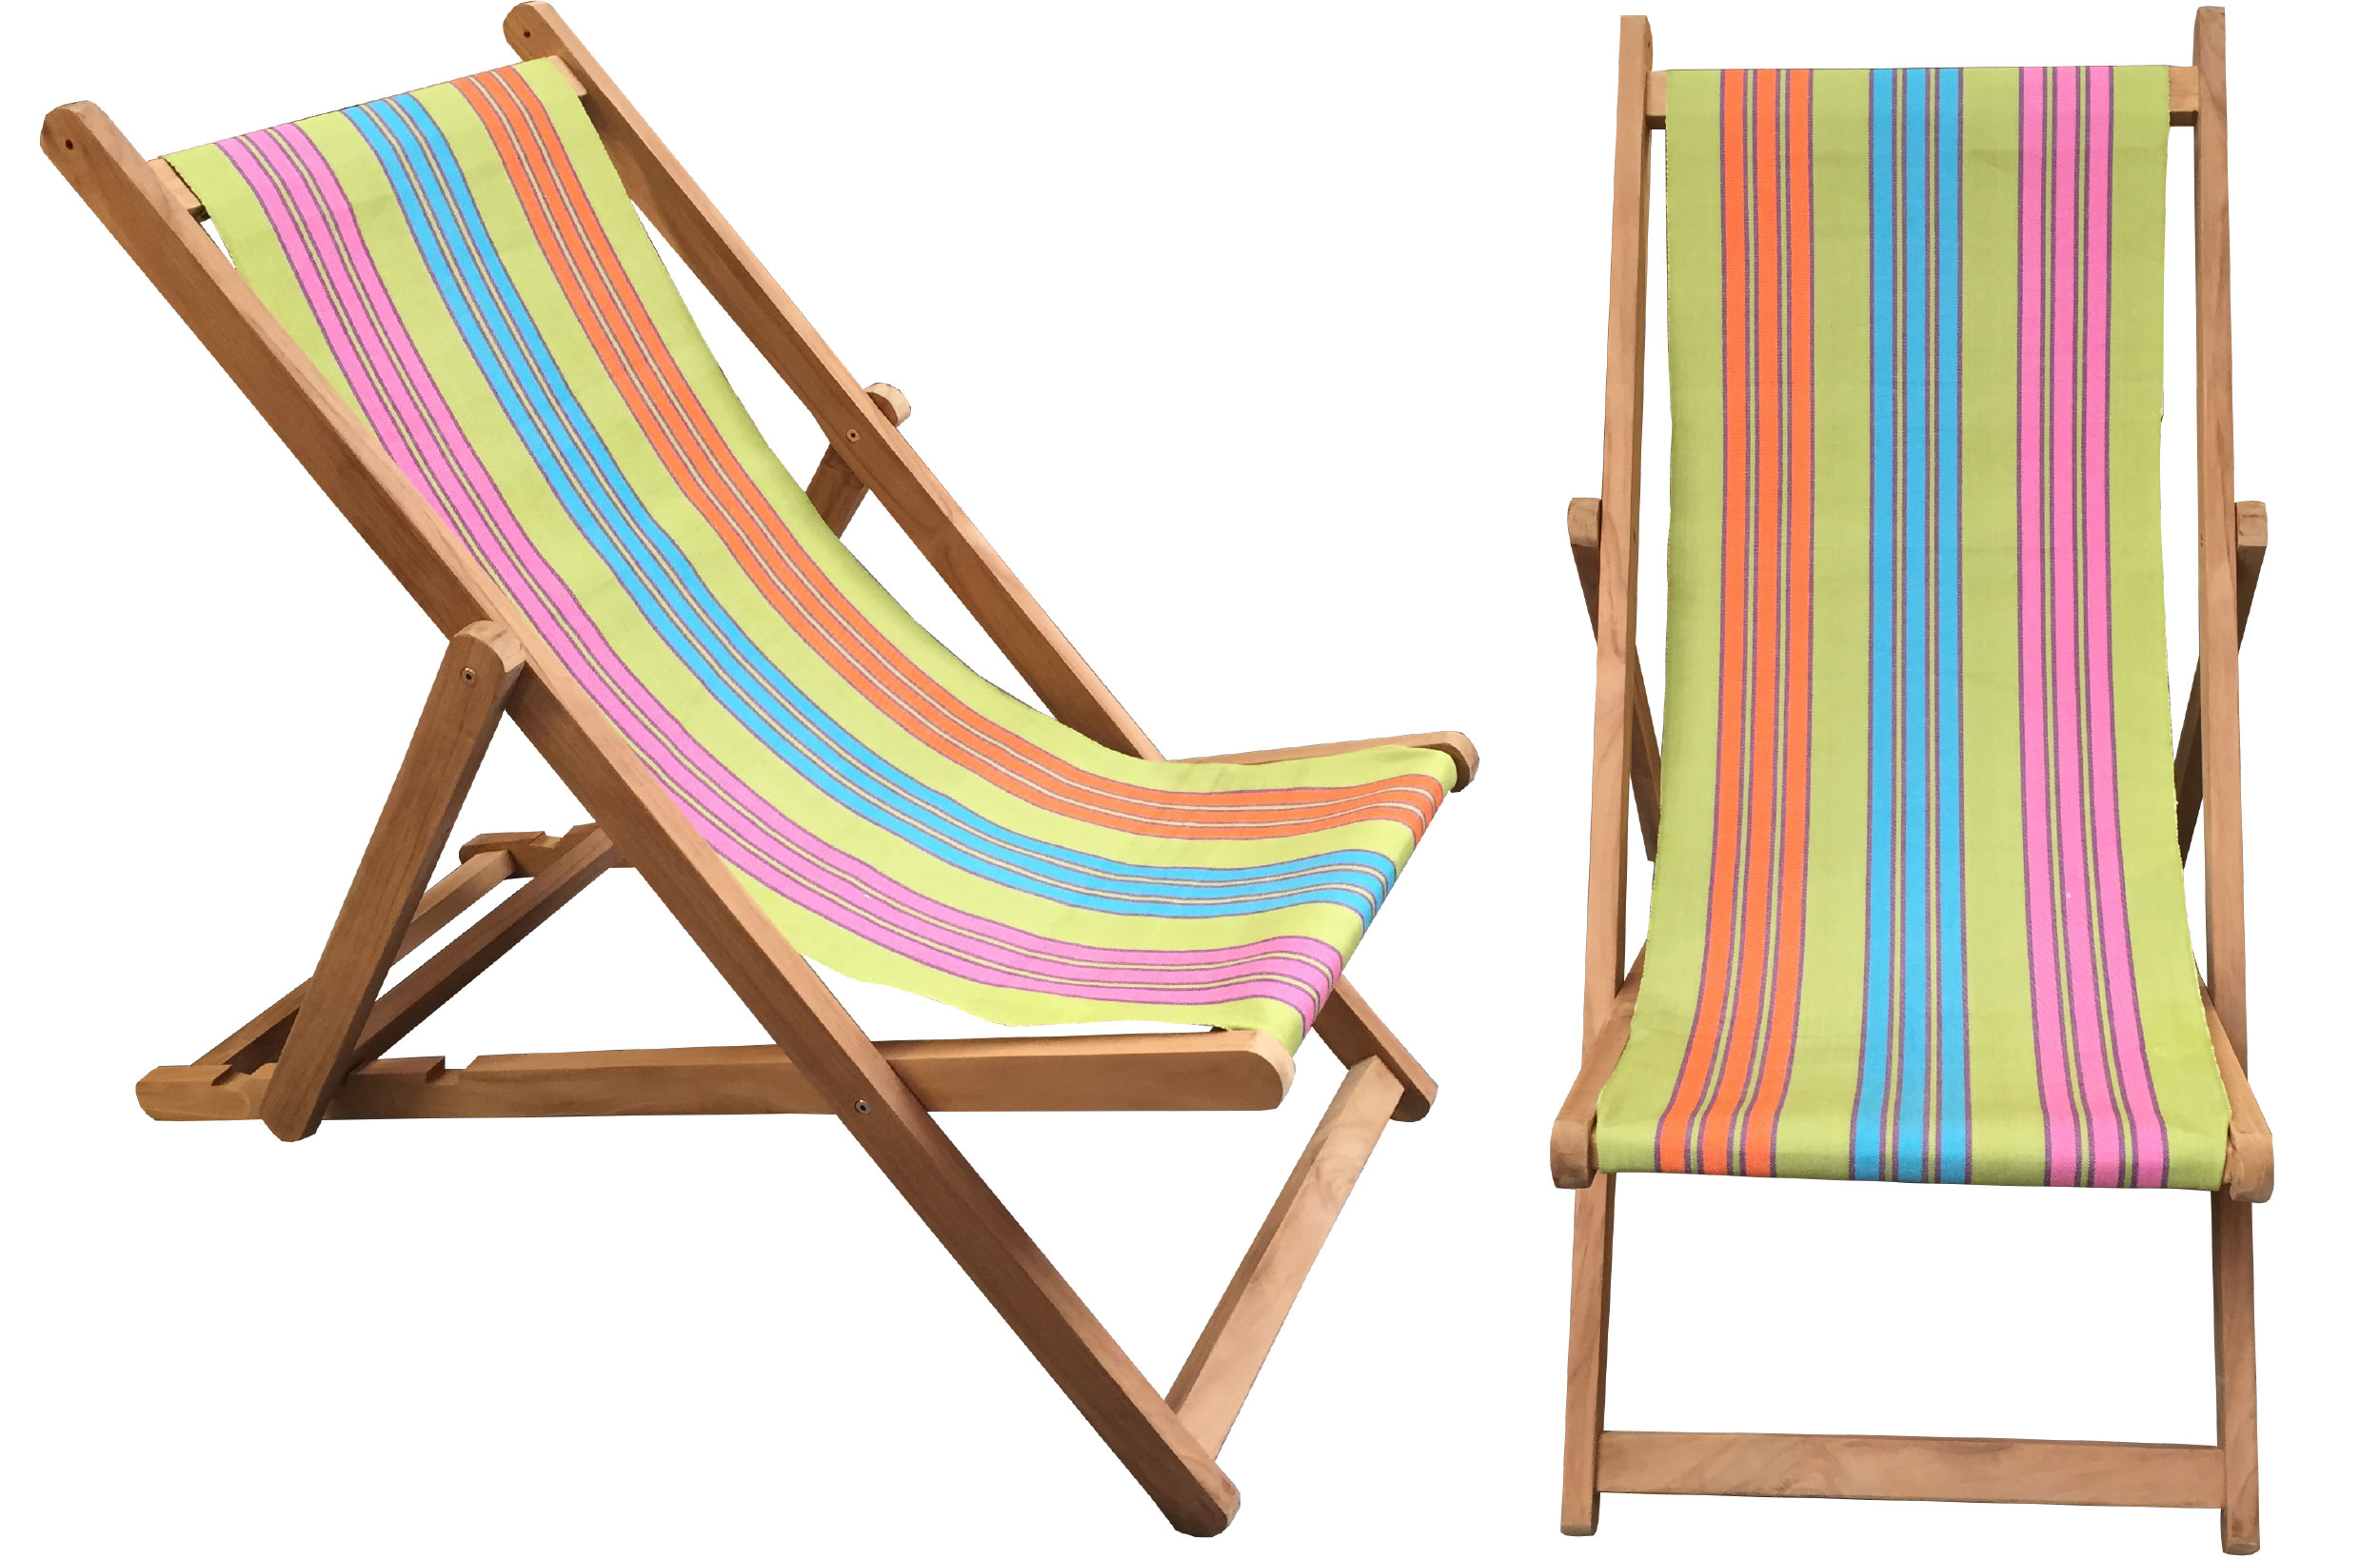 Deckchair with sling of green, turquoise, pink and orange stripes